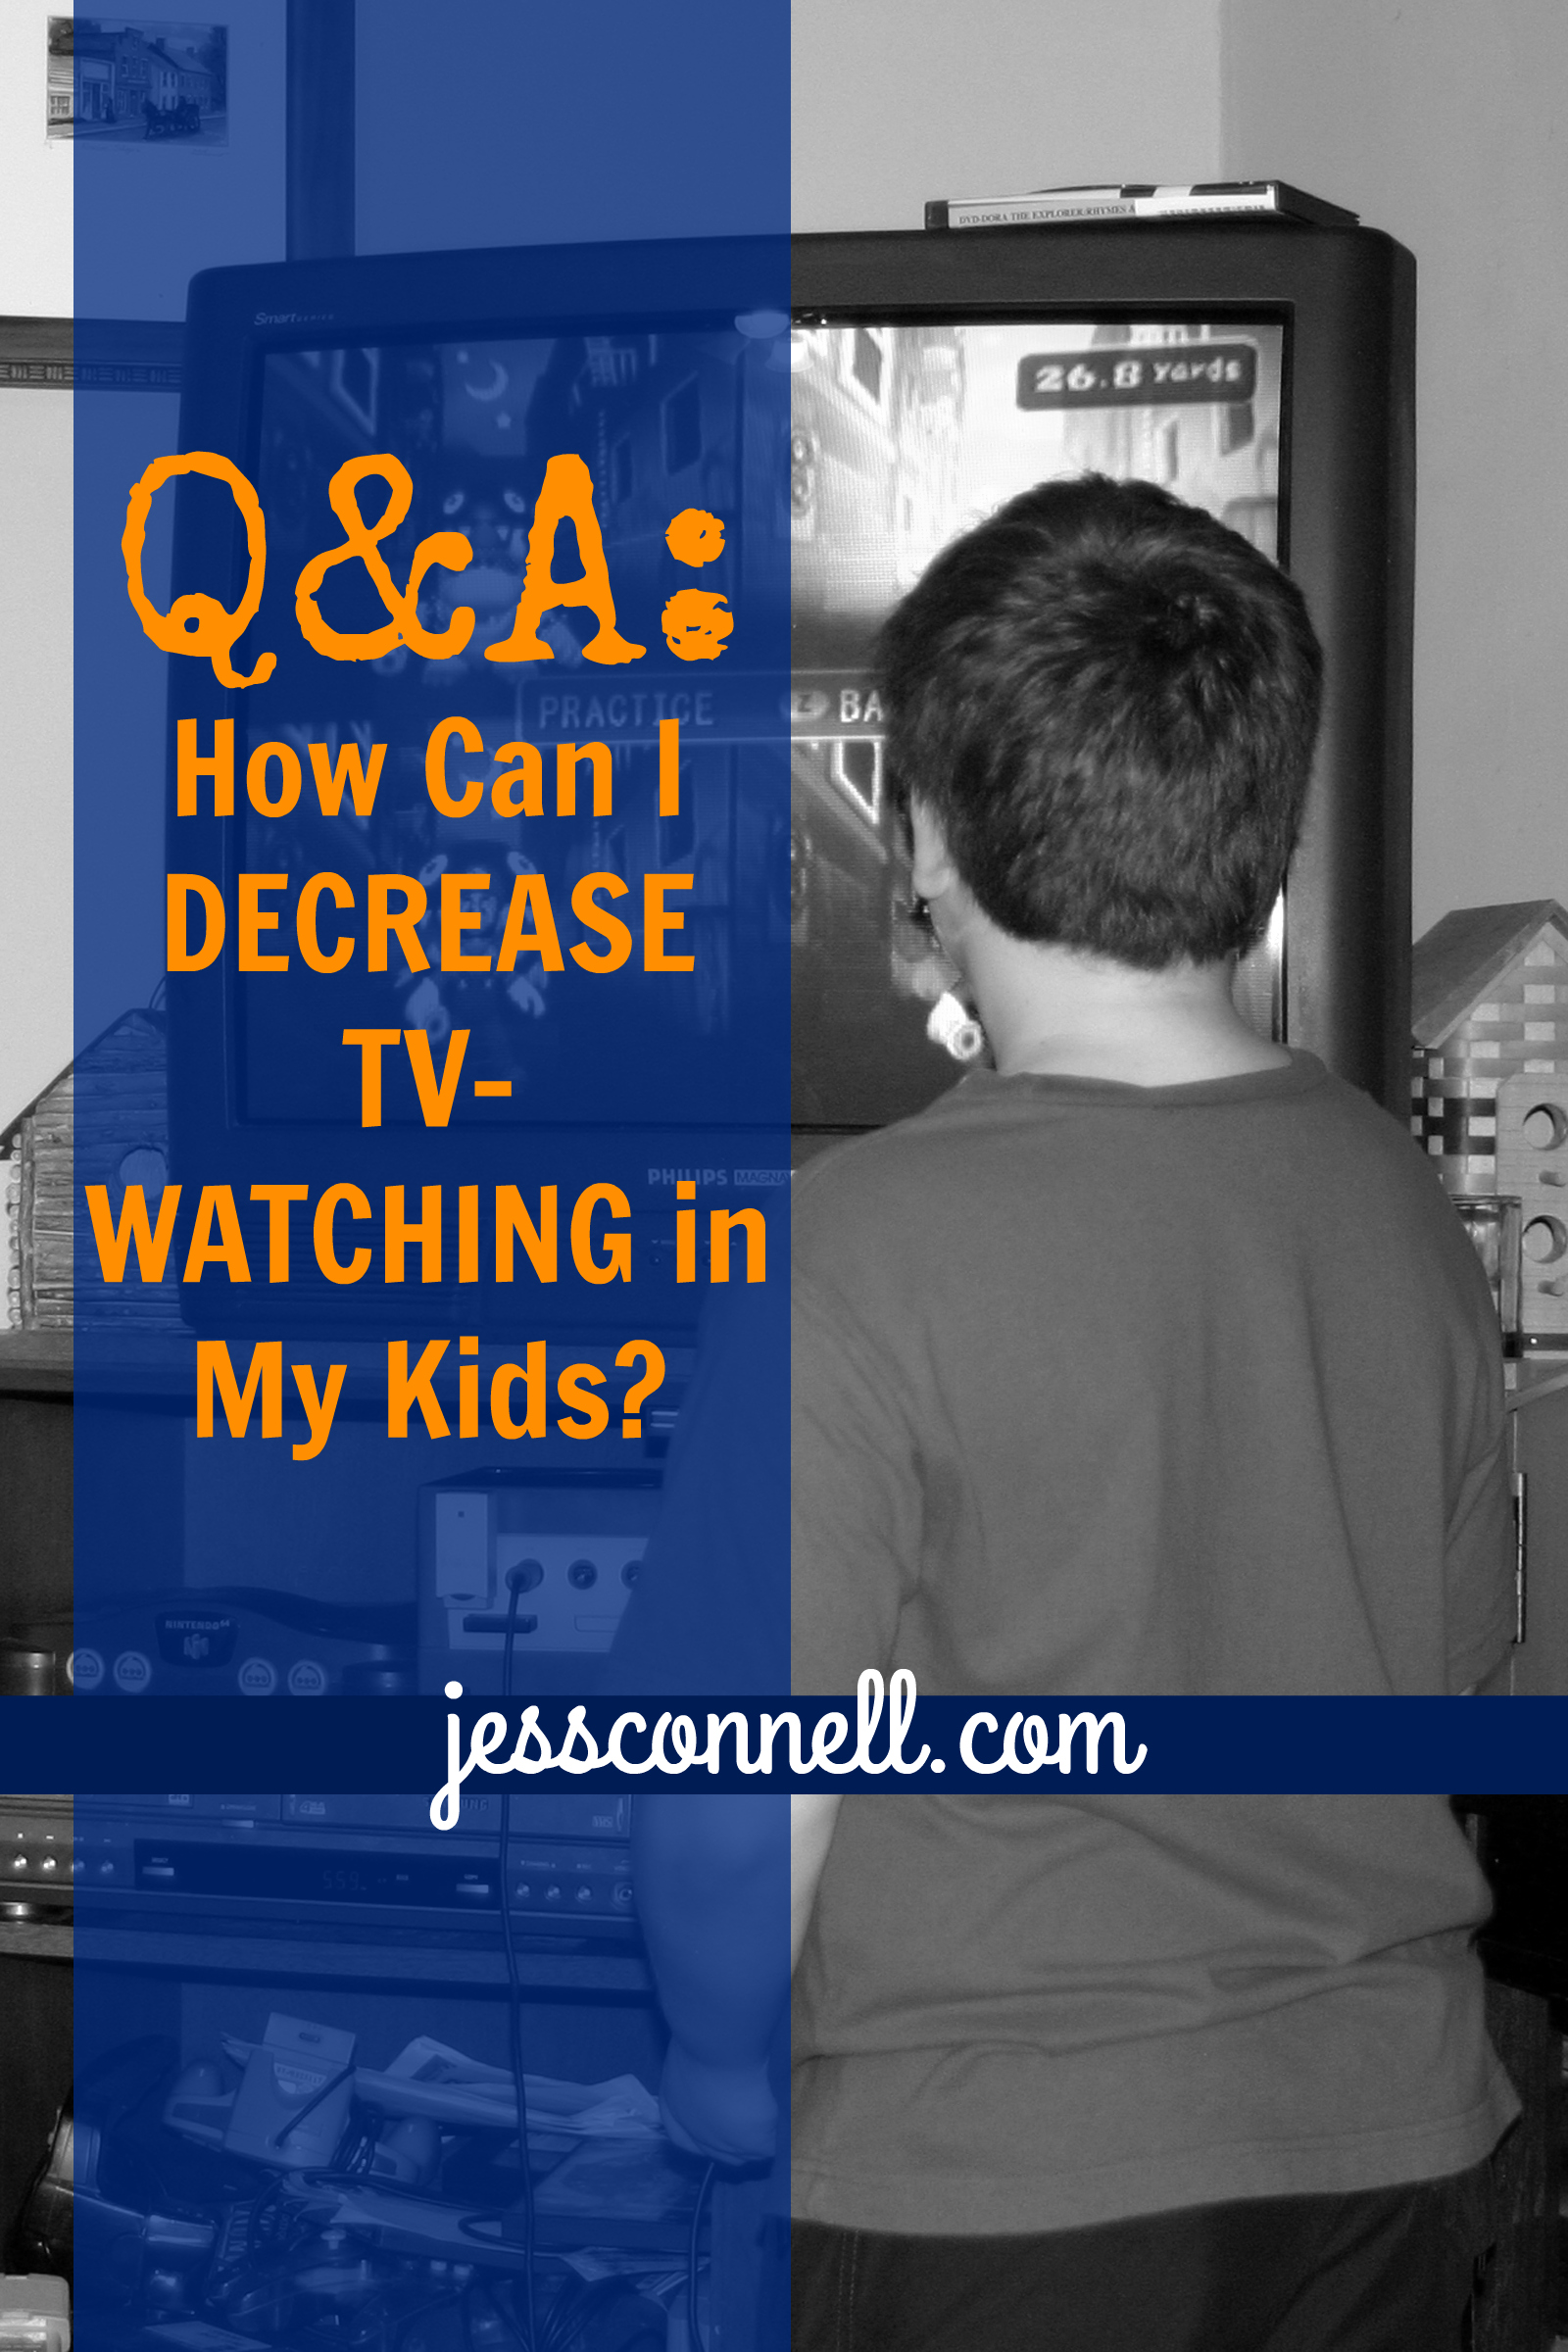 How Can I Decrease TV-Watching In My Kids? // jessconnell.com